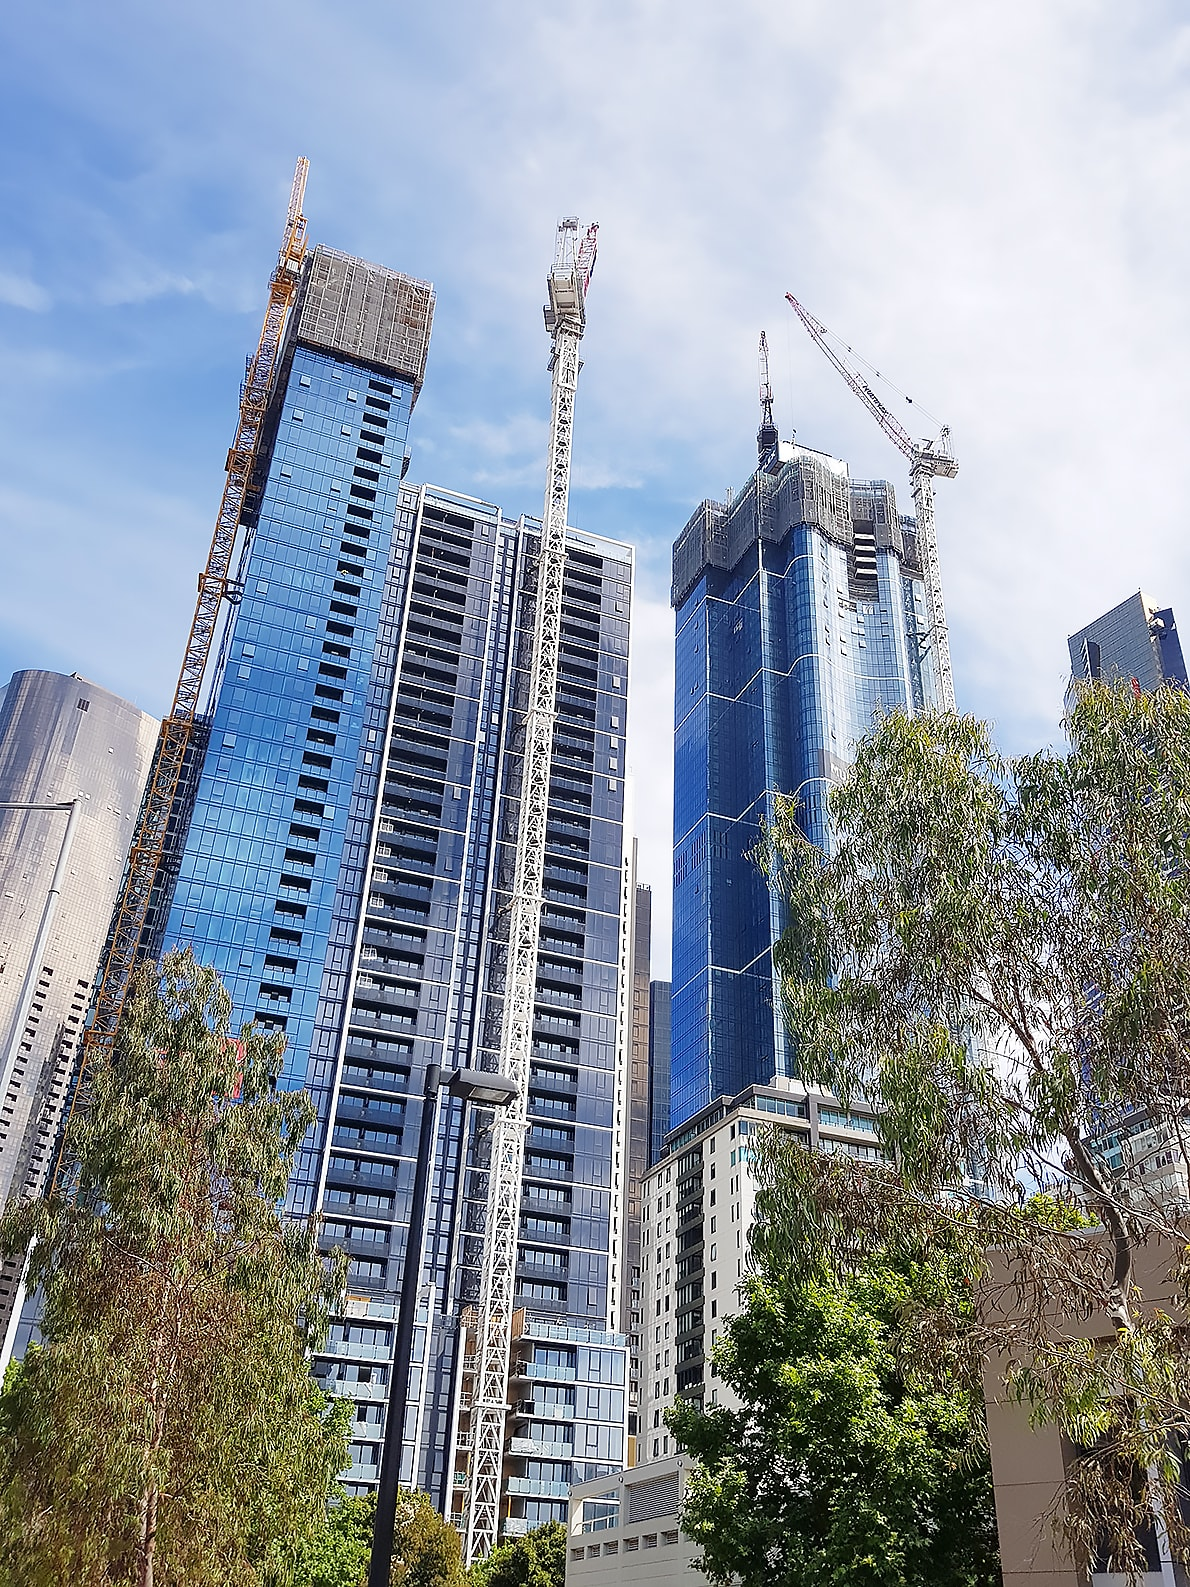 Endearing off-the-plan opportunities for Melbourne's hottest new development